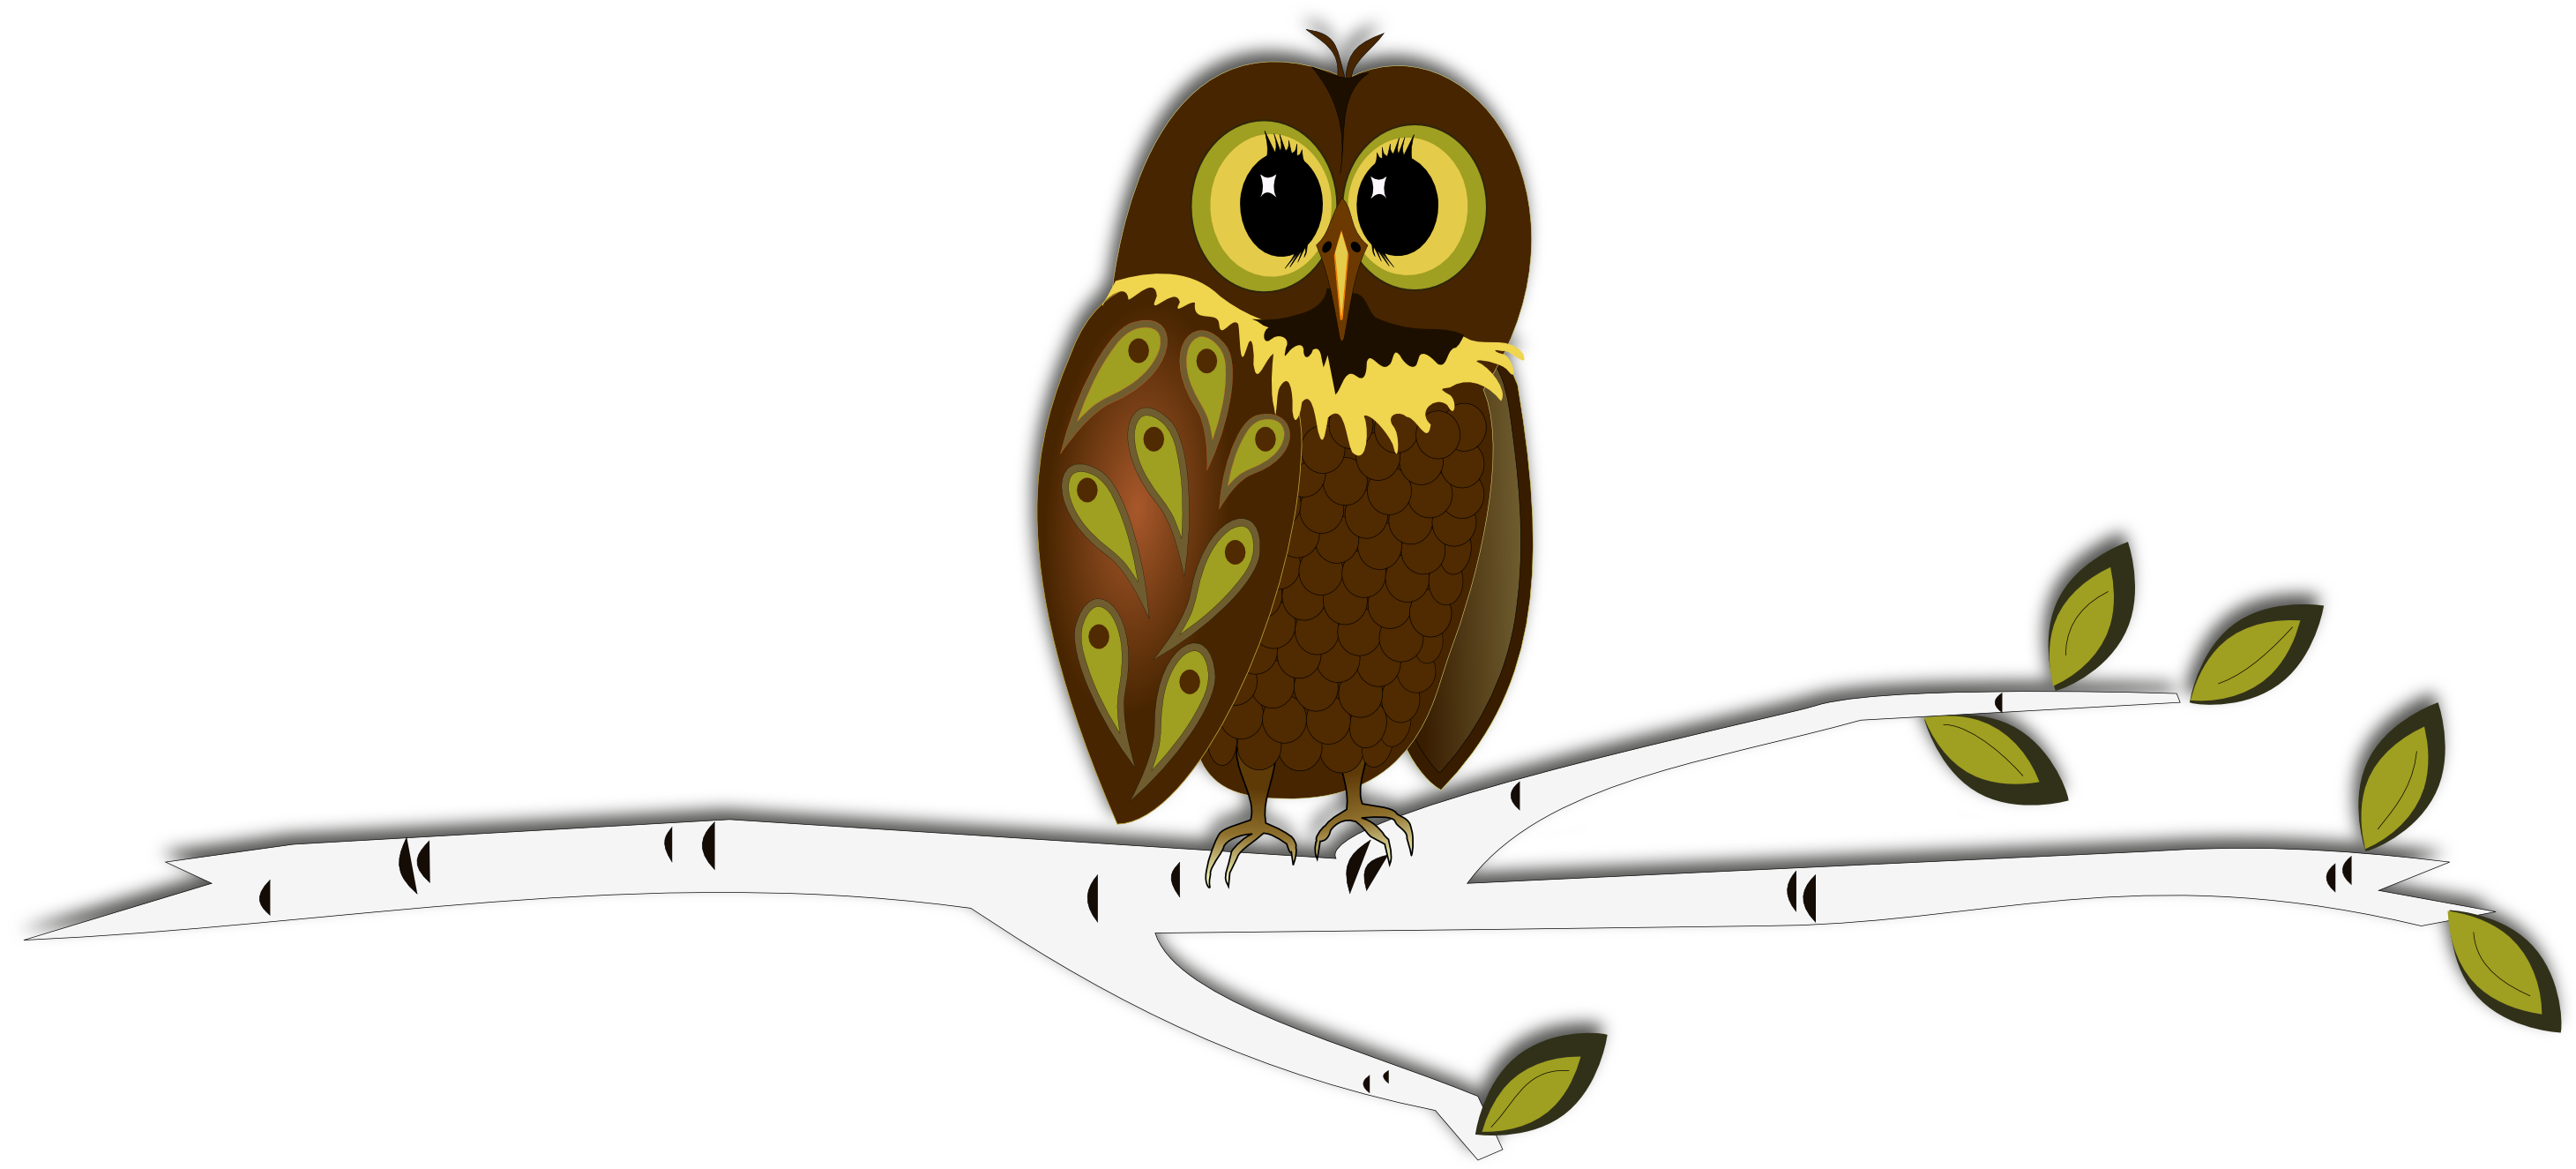 Thanks clipart owl. Inkscape into autumn free